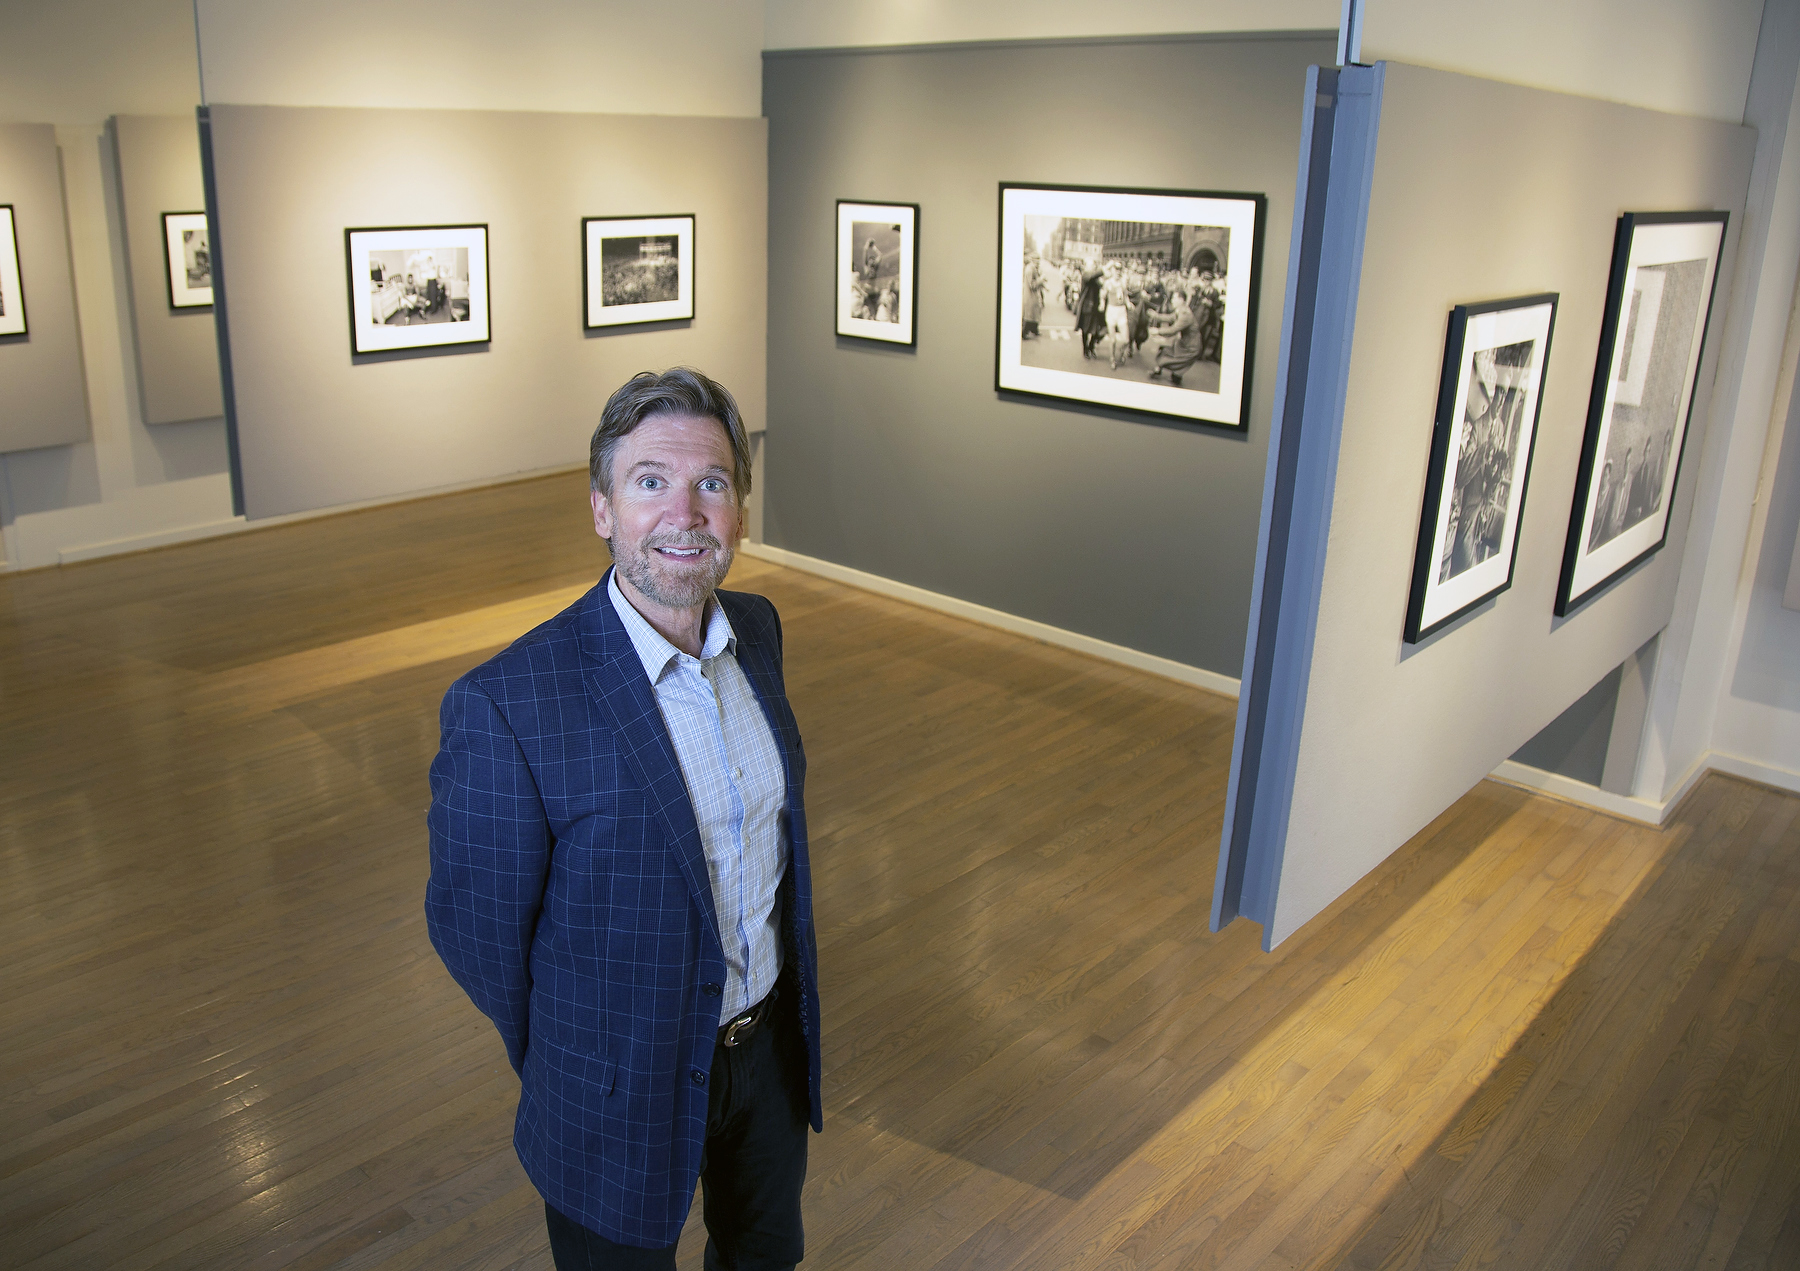 Brian Taylor photographed at the Center for the Photographic Arts in Carmel, Calif. on Tuesday, May 22, 2018. Taylor is a long-time San Jose State art professor who is now the director of the Center for the Photographic Arts in Carmel and the primary caretaker of the legacy of art photography in Carmel, which includes Ansel Adams and Cole and Edward Weston.